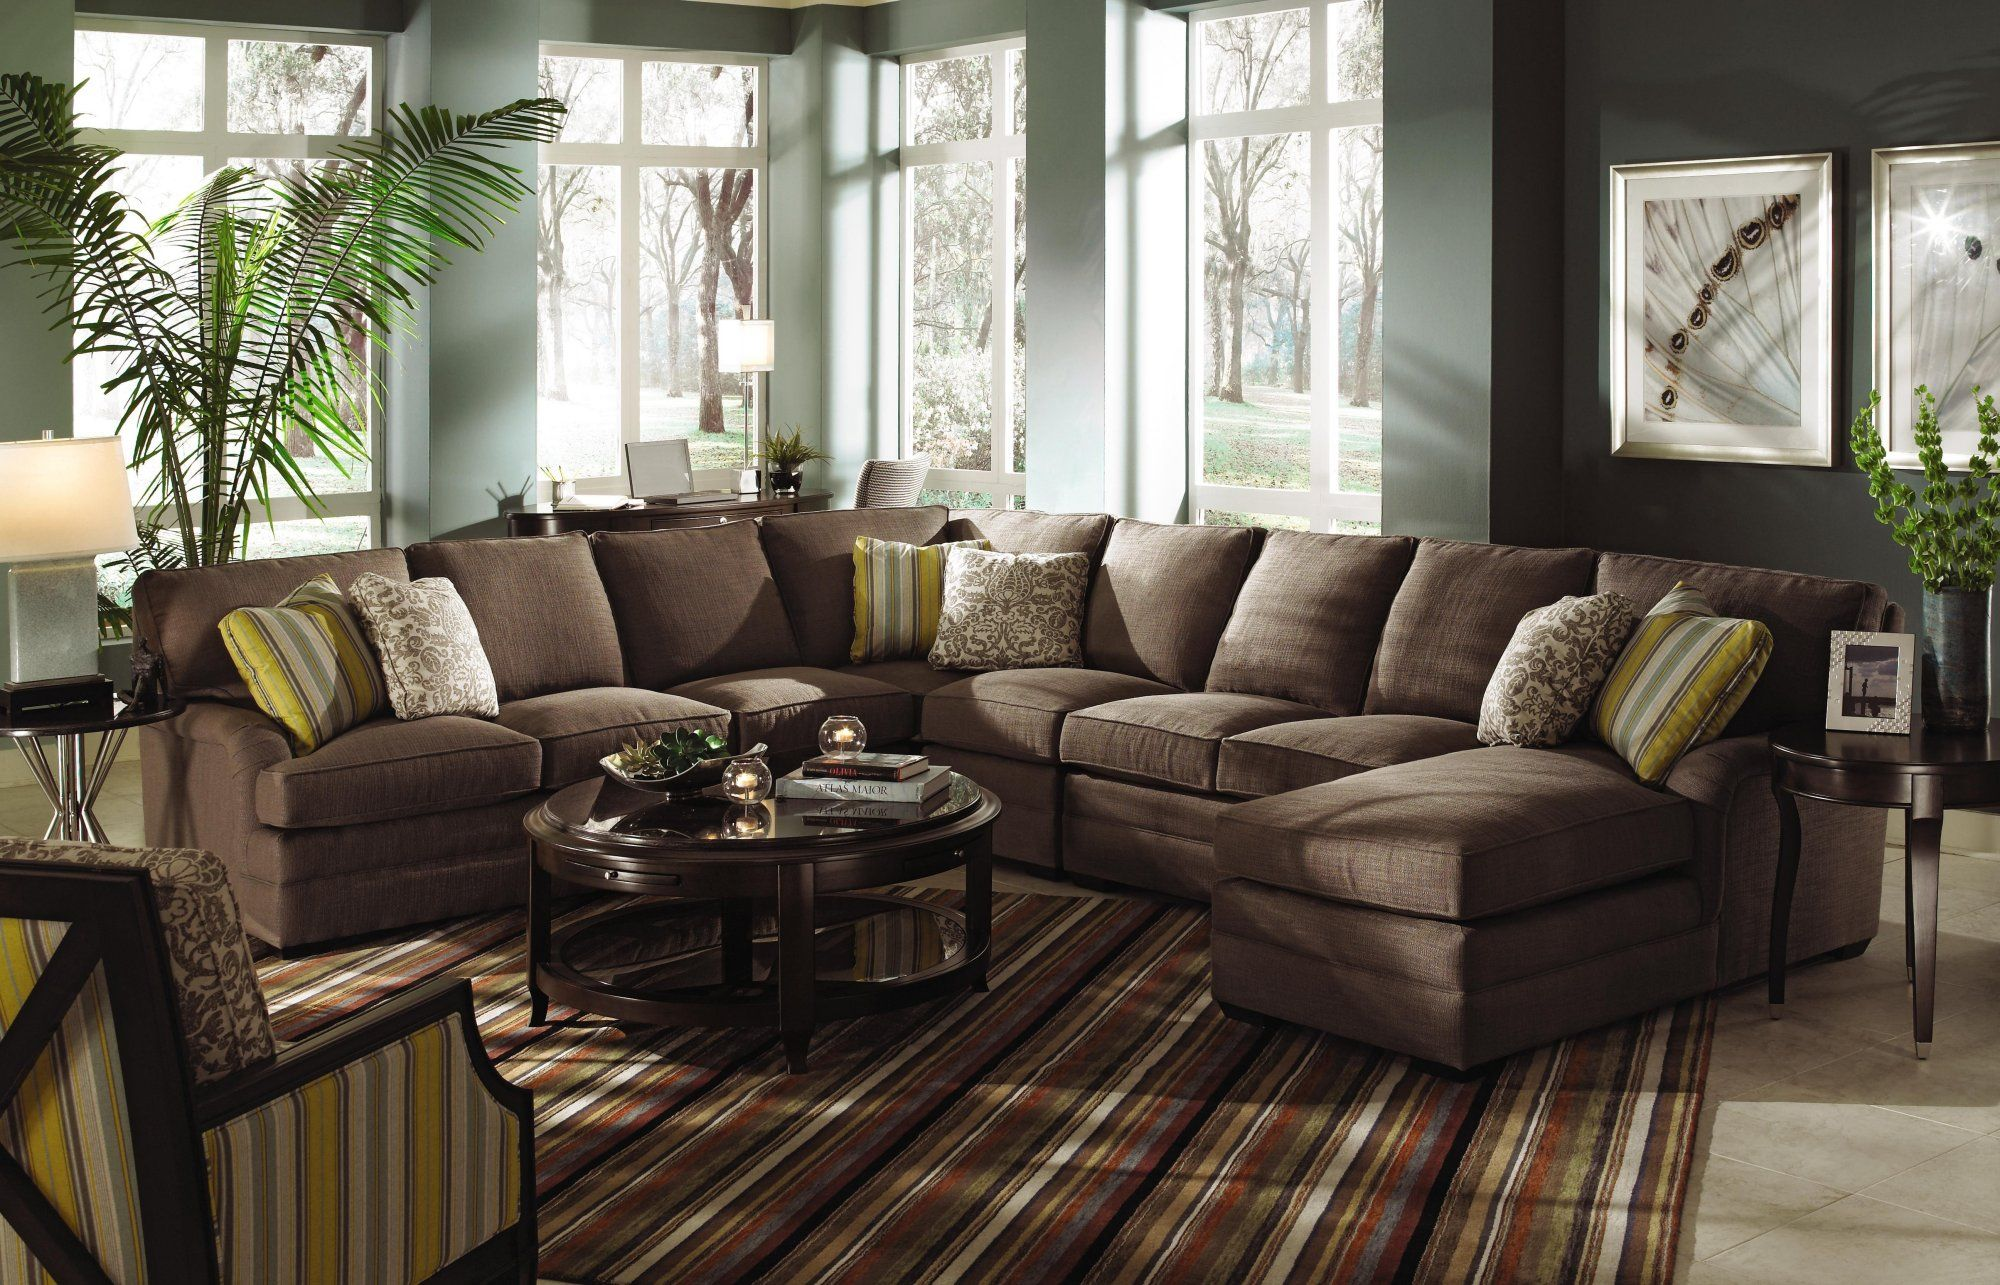 Ashton sectional Upholstered in an extra thick and luxurious